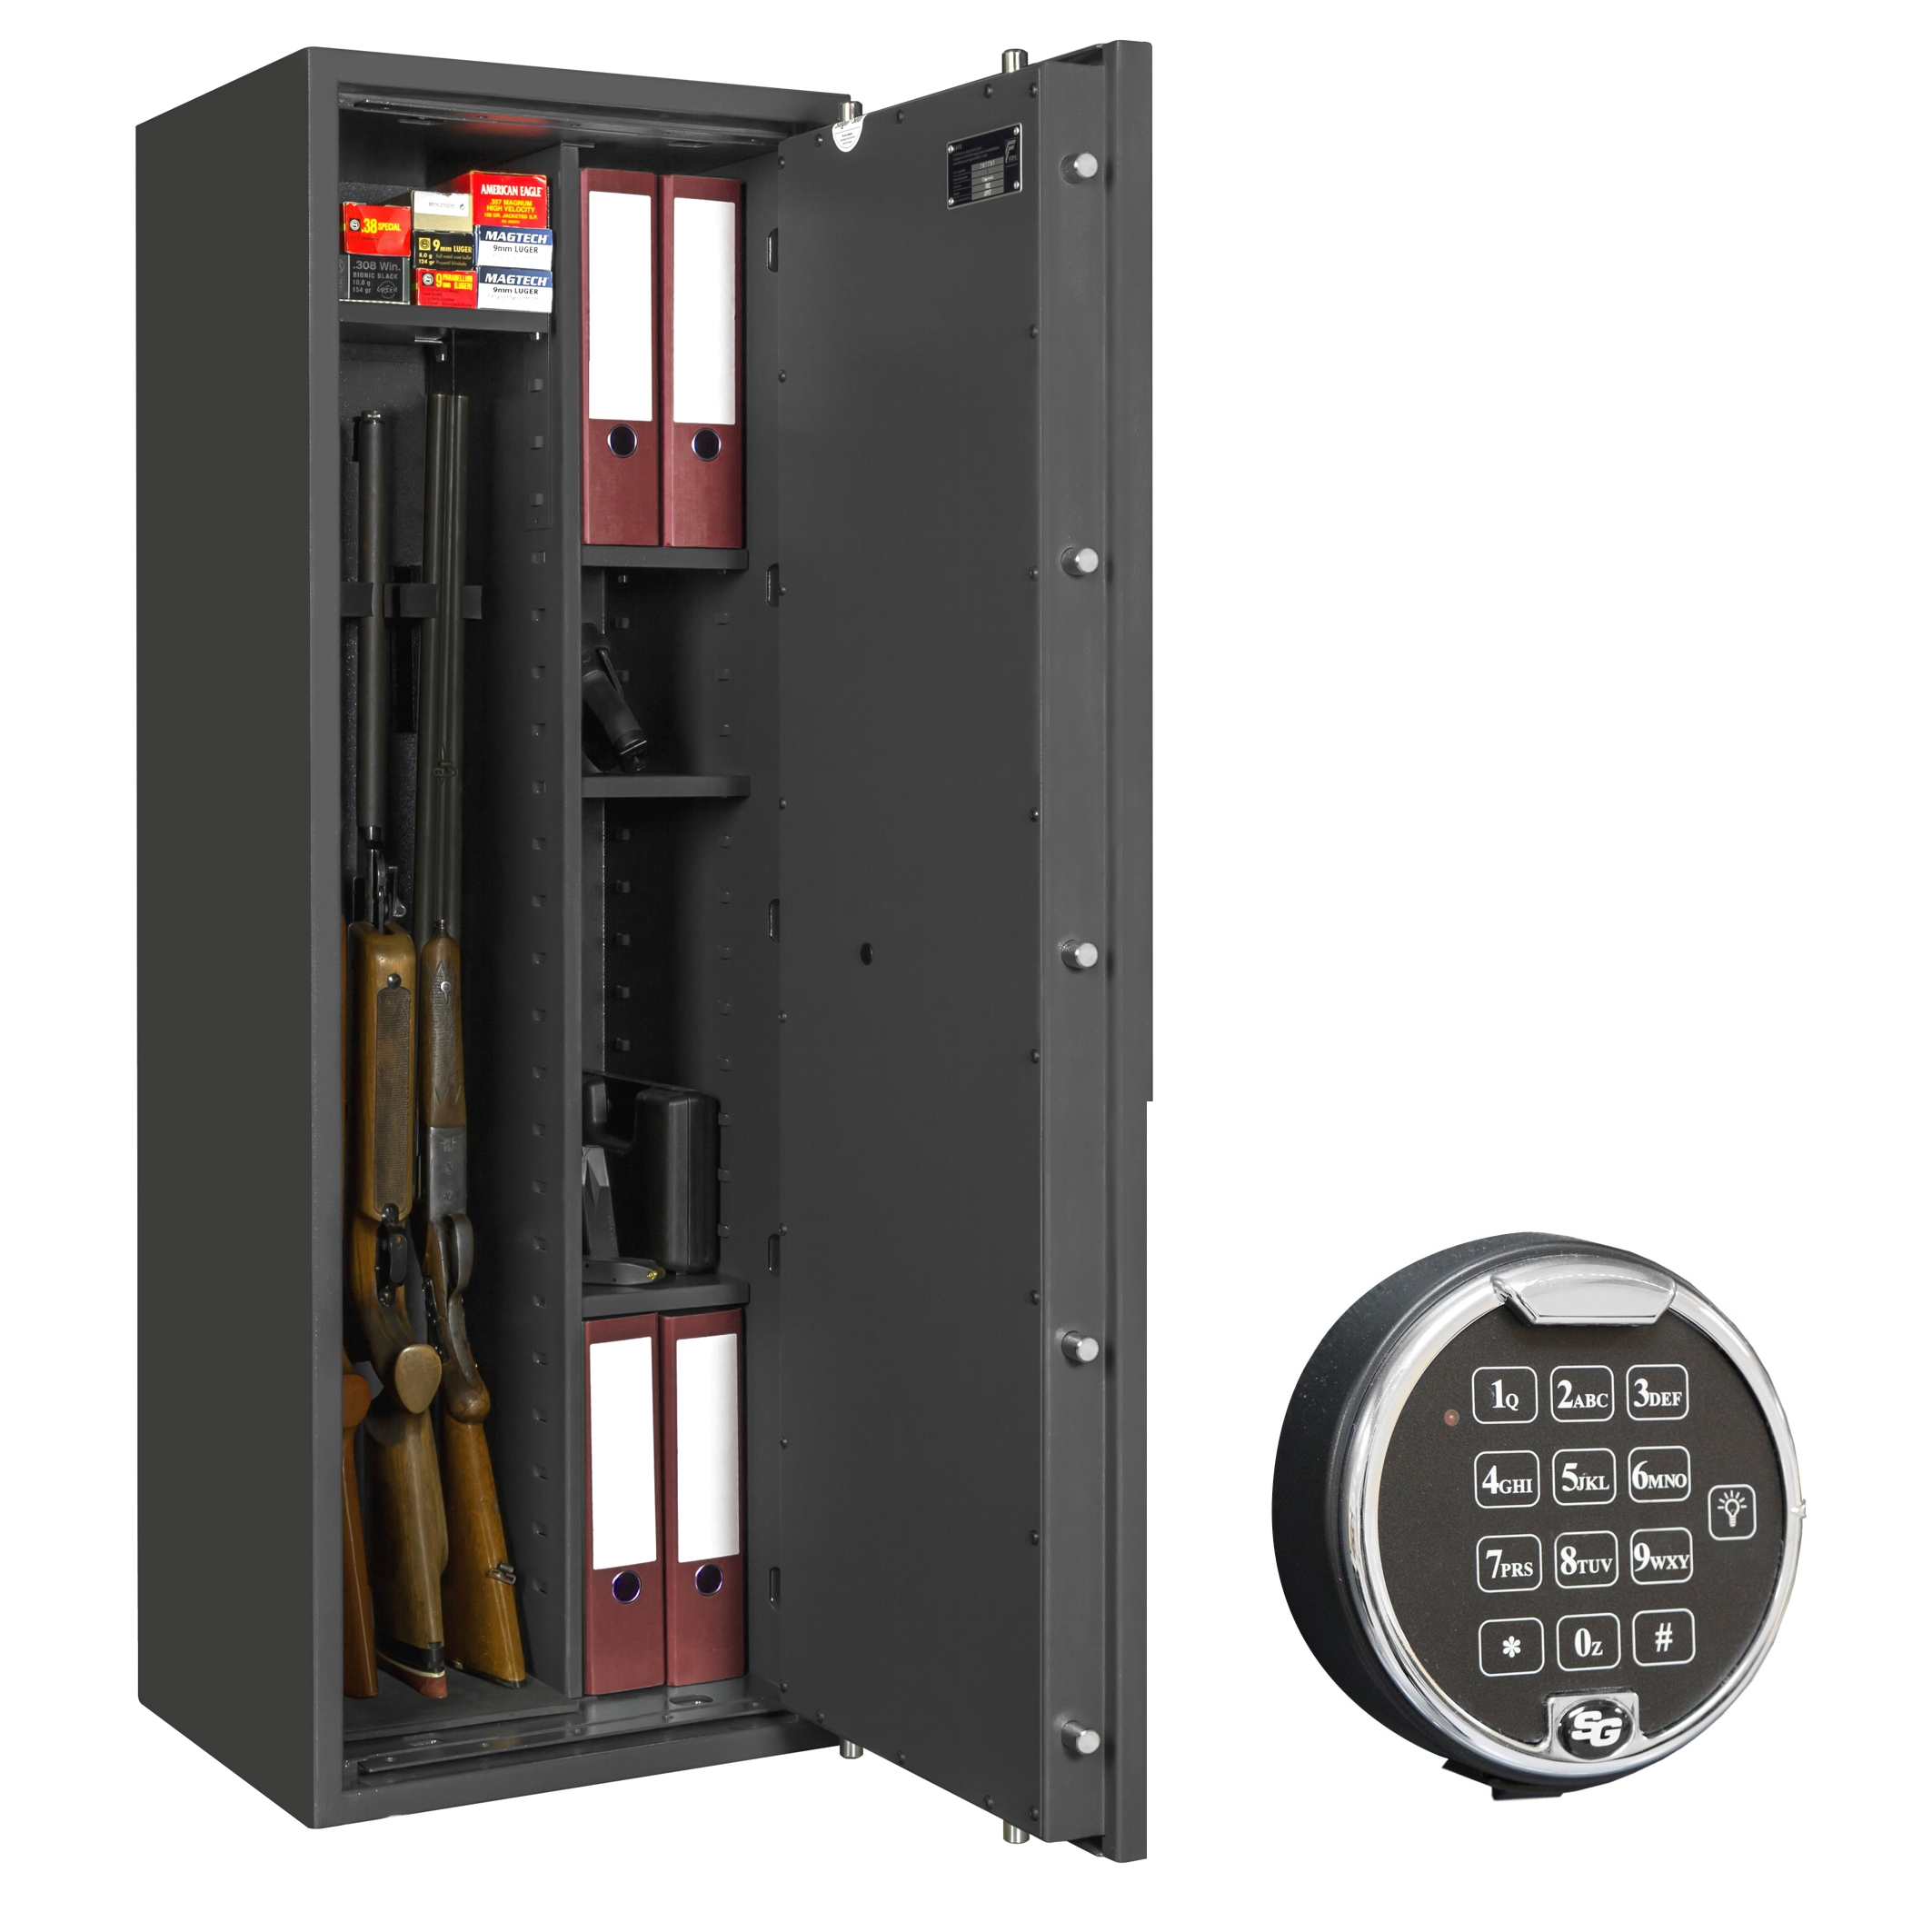 waffenschrank gun safe 1 1 4c elo 1400x500x420mm klasse 1 4 waffenhalter regalteil. Black Bedroom Furniture Sets. Home Design Ideas